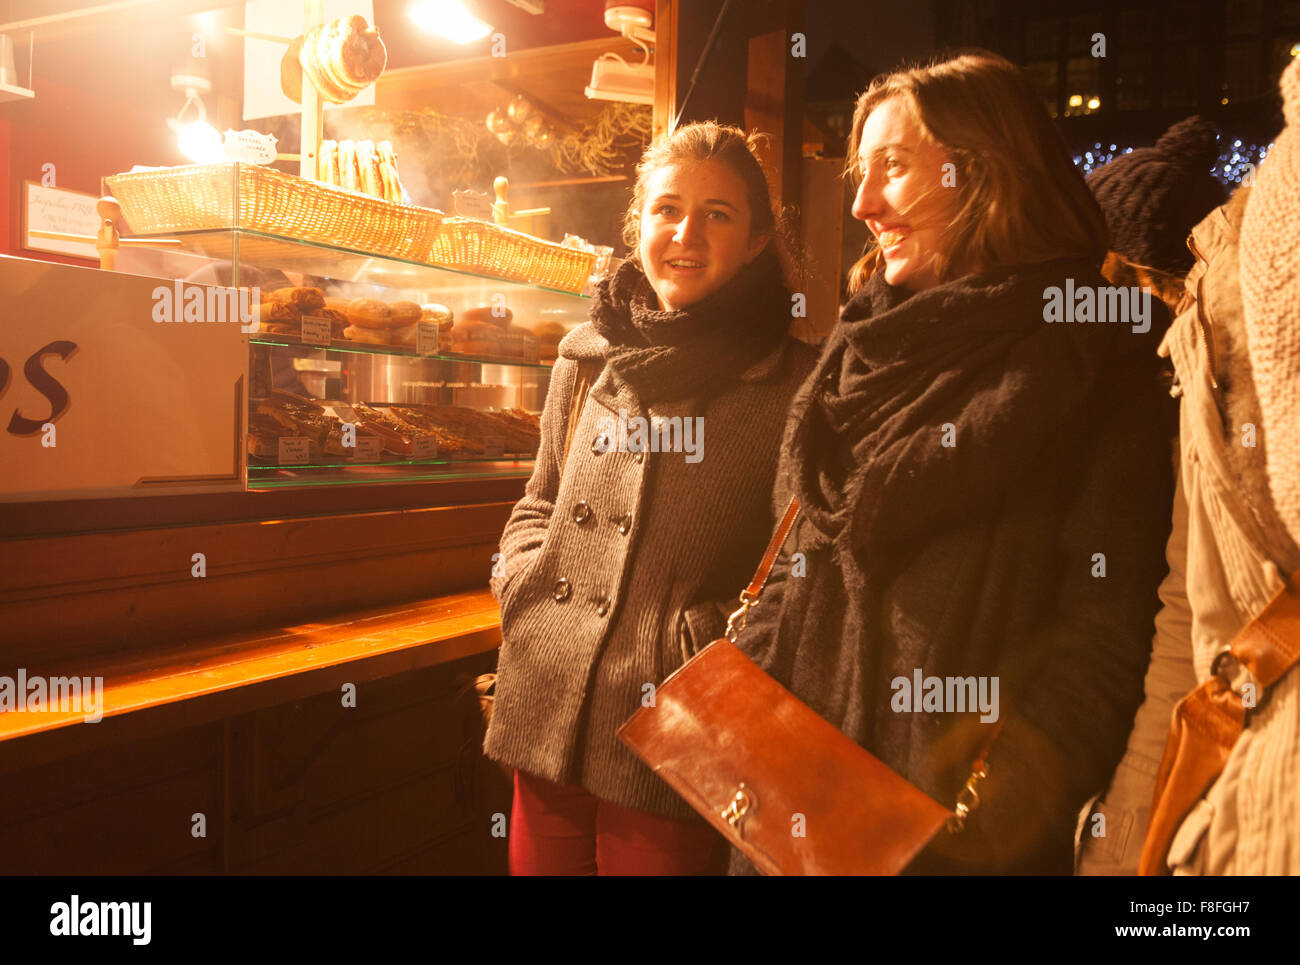 women-shopping-and-having-fun-strasbourg-christmas-market-strasbourg-F8FGH7.jpg